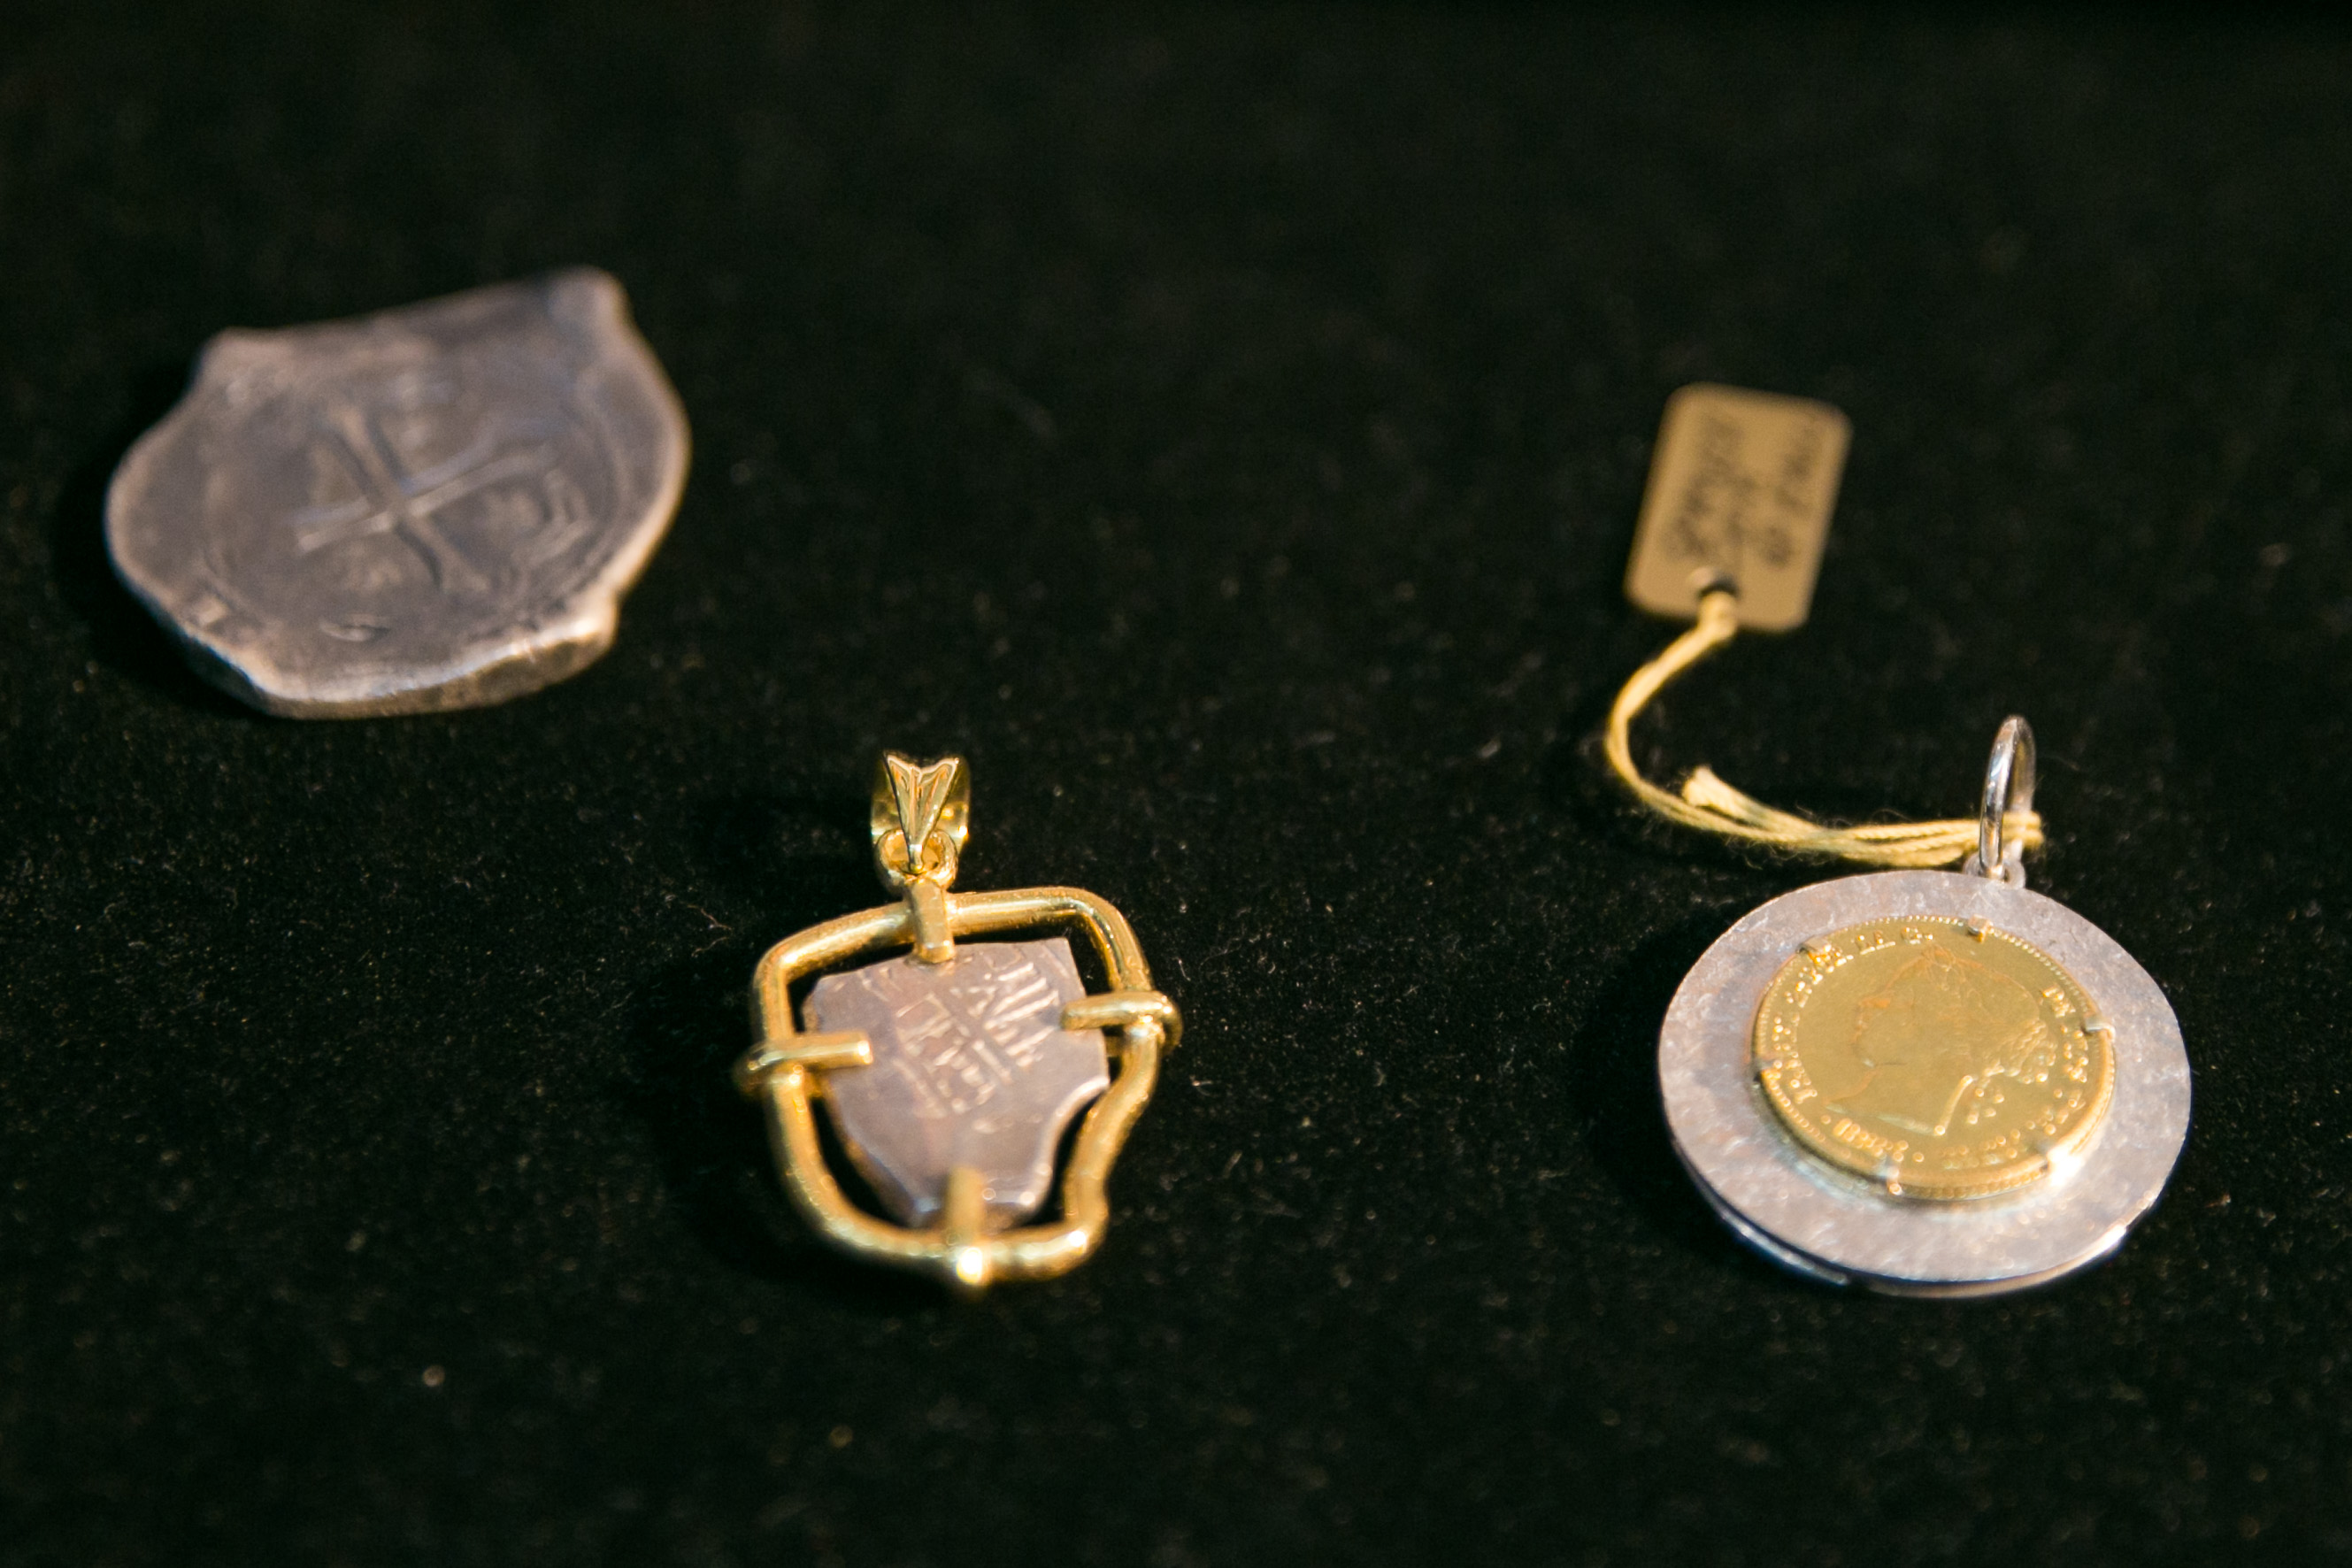 ANTIQUE COINS. Hilis Kalamays (left) are coins used during the Galleon Trade. In the center is a hilis kalamay that Maria Angelica turned into a pendant. Photo by Pat Nabong/Rappler